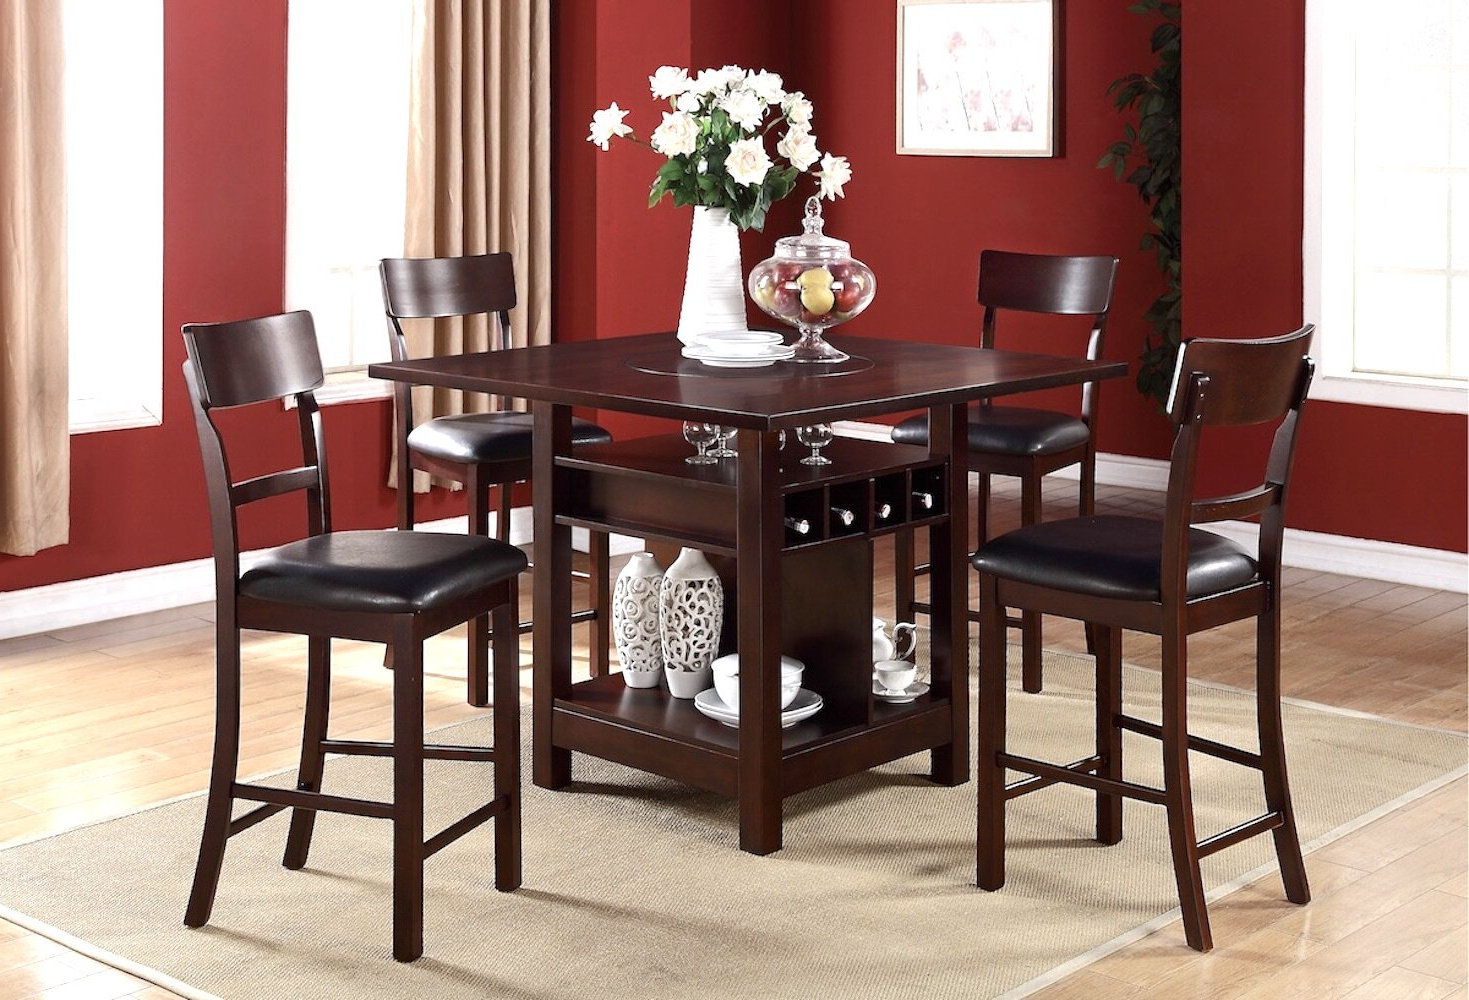 Biggs 5 Piece Counter Height Solid Wood Dining Sets (Set Of 5) Intended For Recent Canora Grey Stevenson 5 Piece Pub Table Set (View 5 of 25)